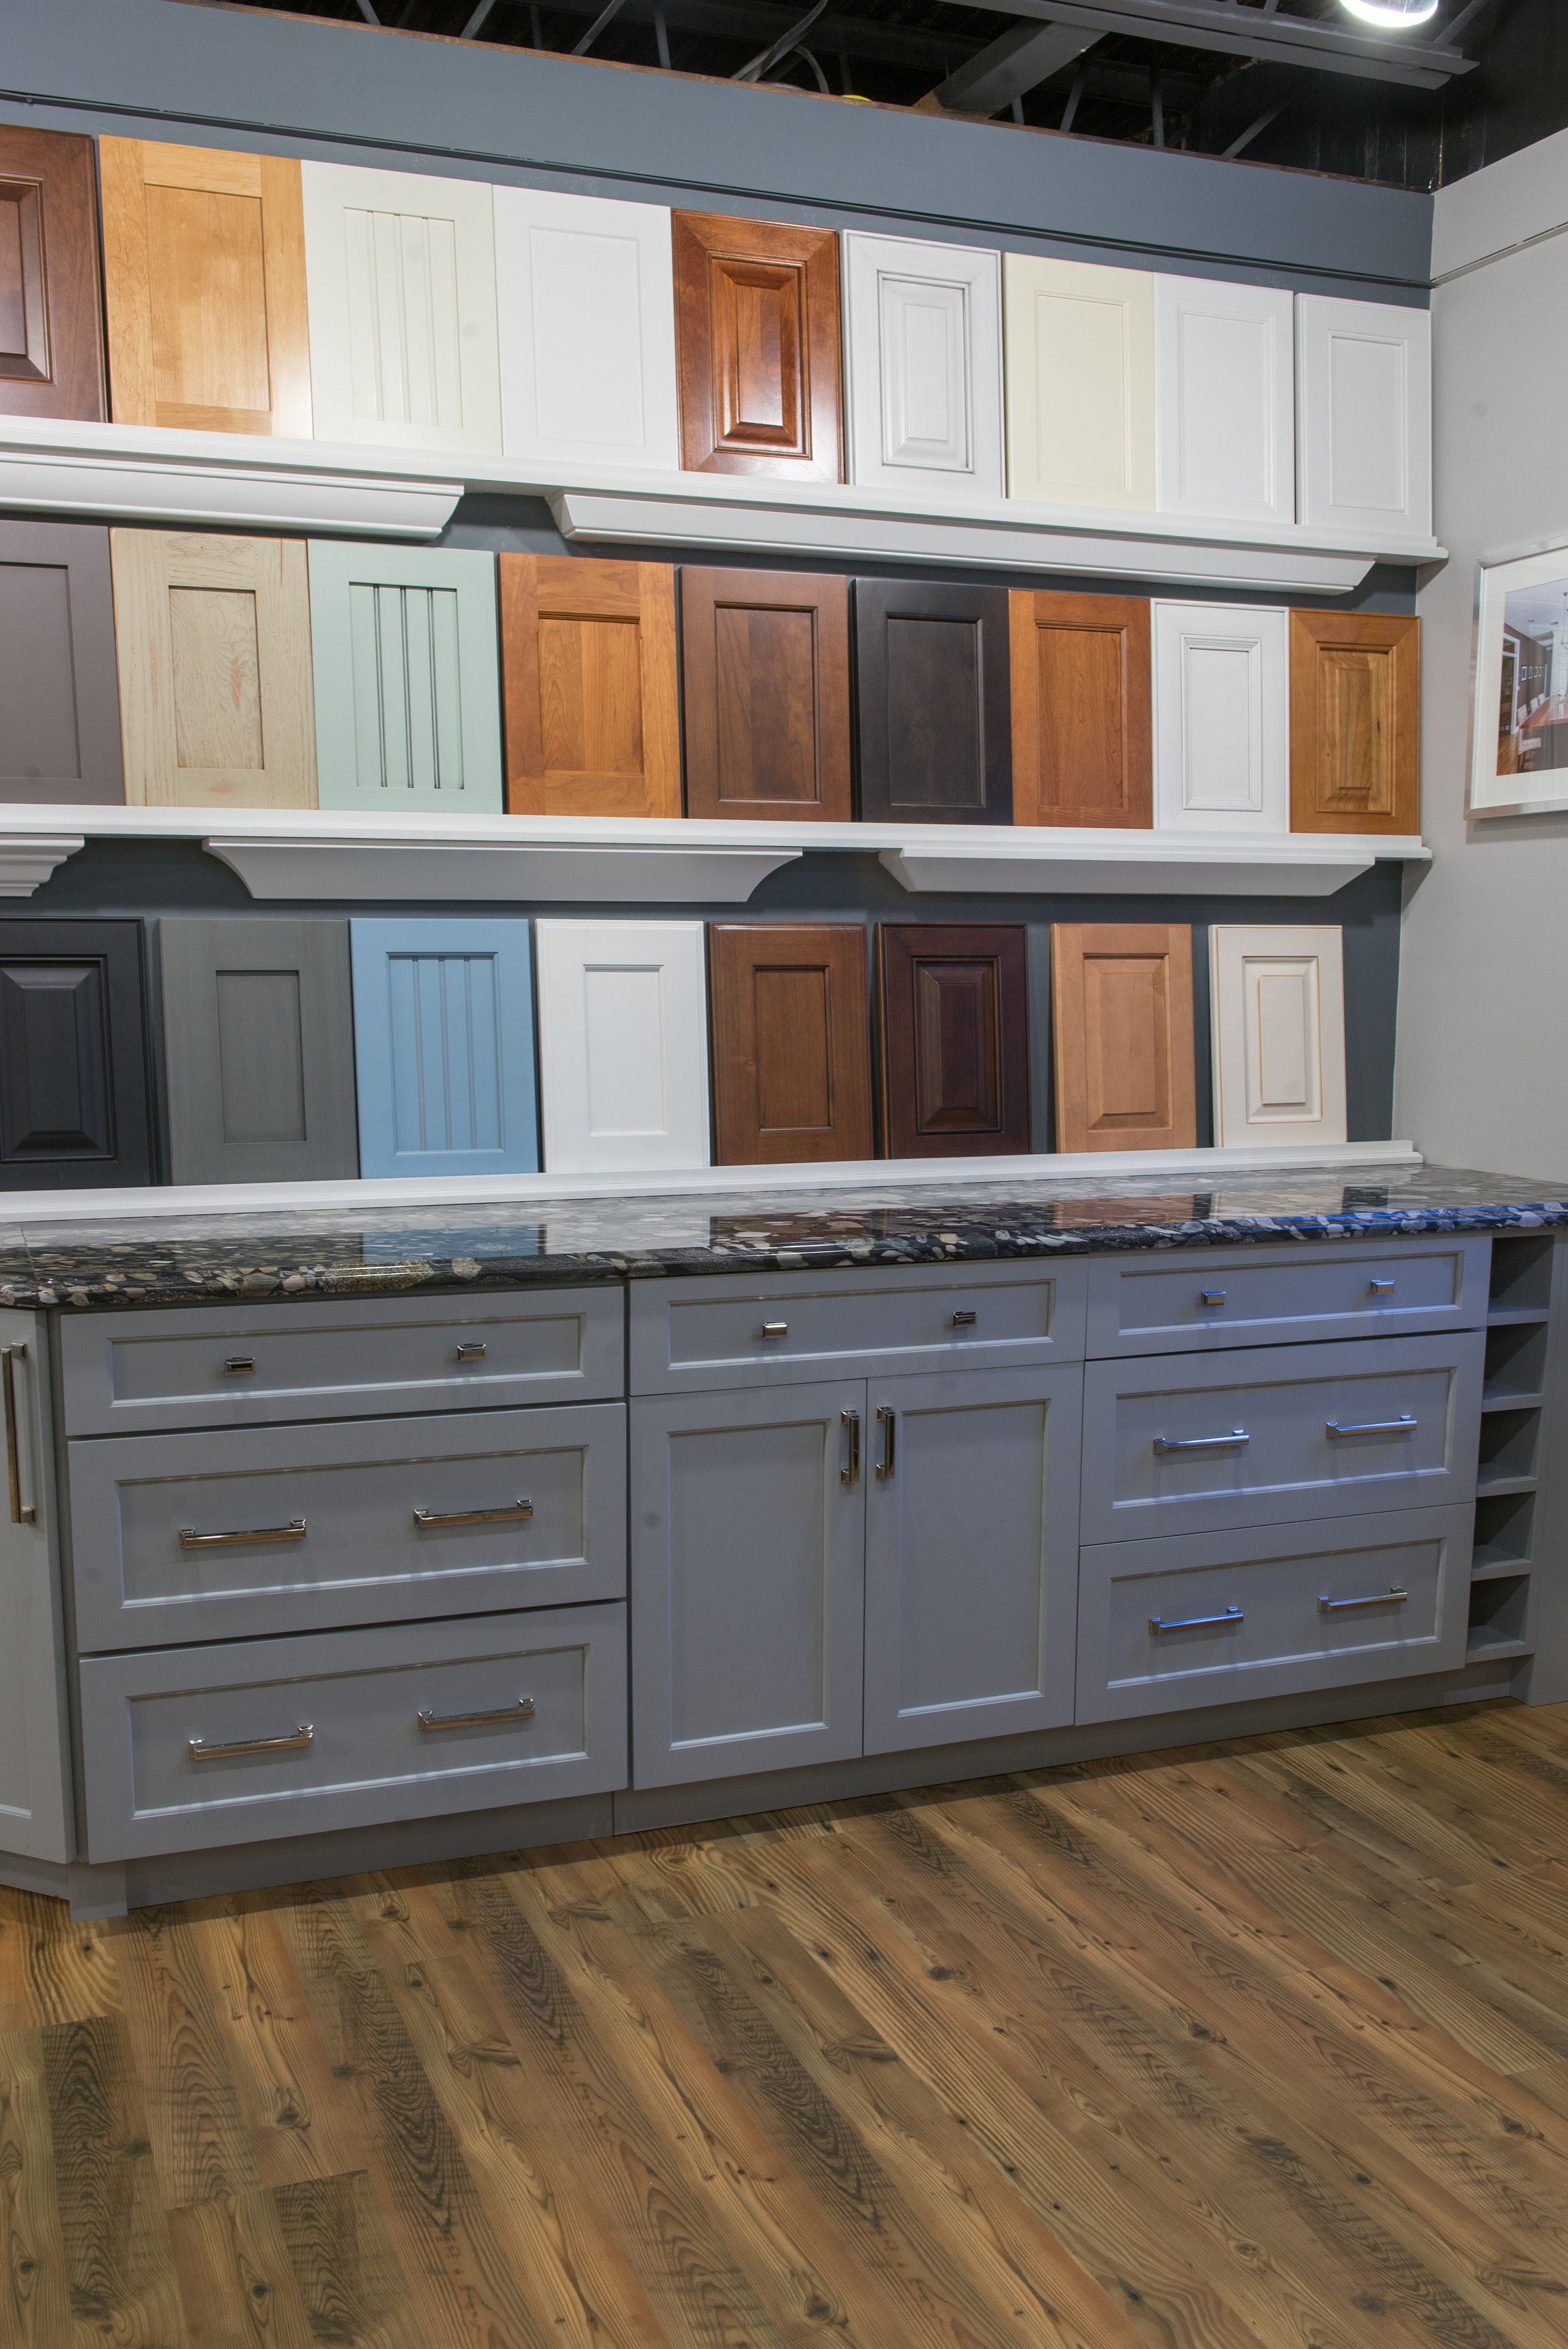 Independent Small The Cabinetry Www Thecabinetry Net Kitchen Design Showrooms Kitchen Cabinets Showroom Showroom Interior Design